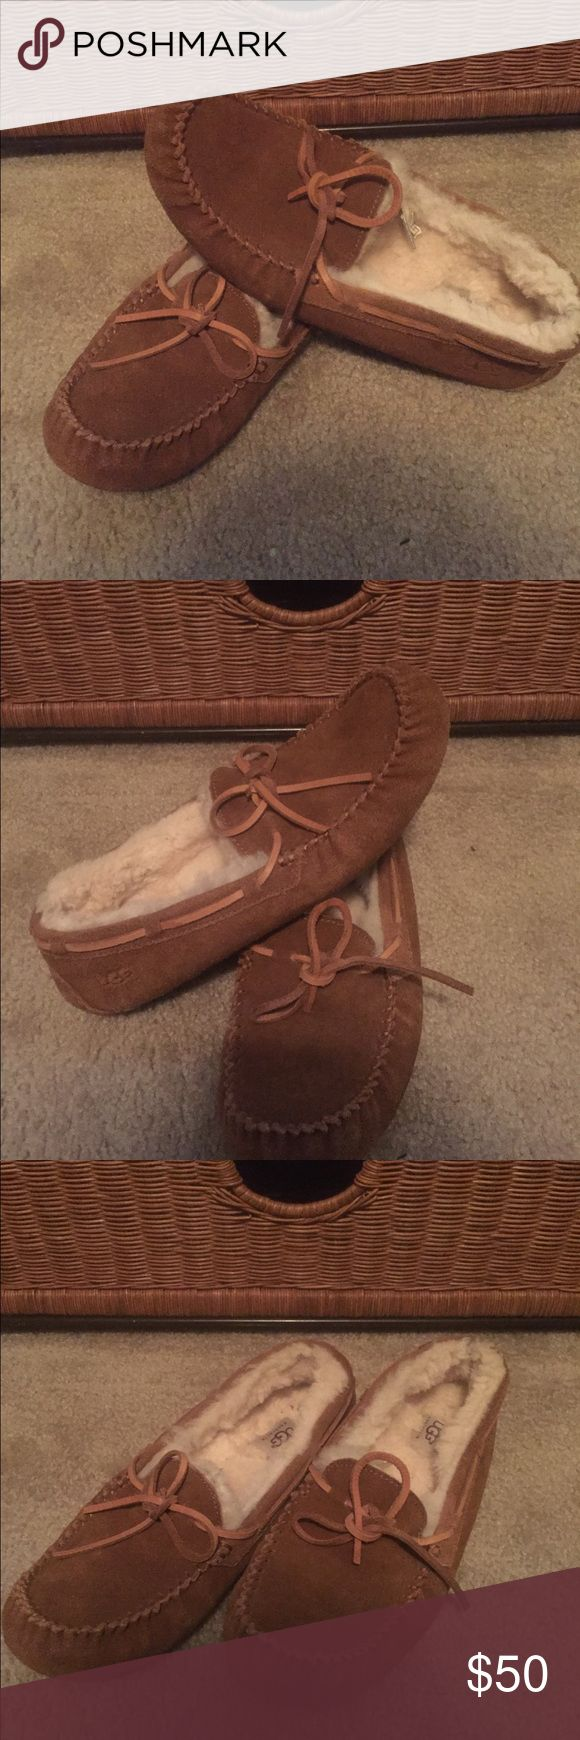 Ugg Olsen Shearling Slipper This great cognac colored slipper is in great condition. An Authentic Ugg last forever. They come from a smoke and pet free home. UGG Shoes